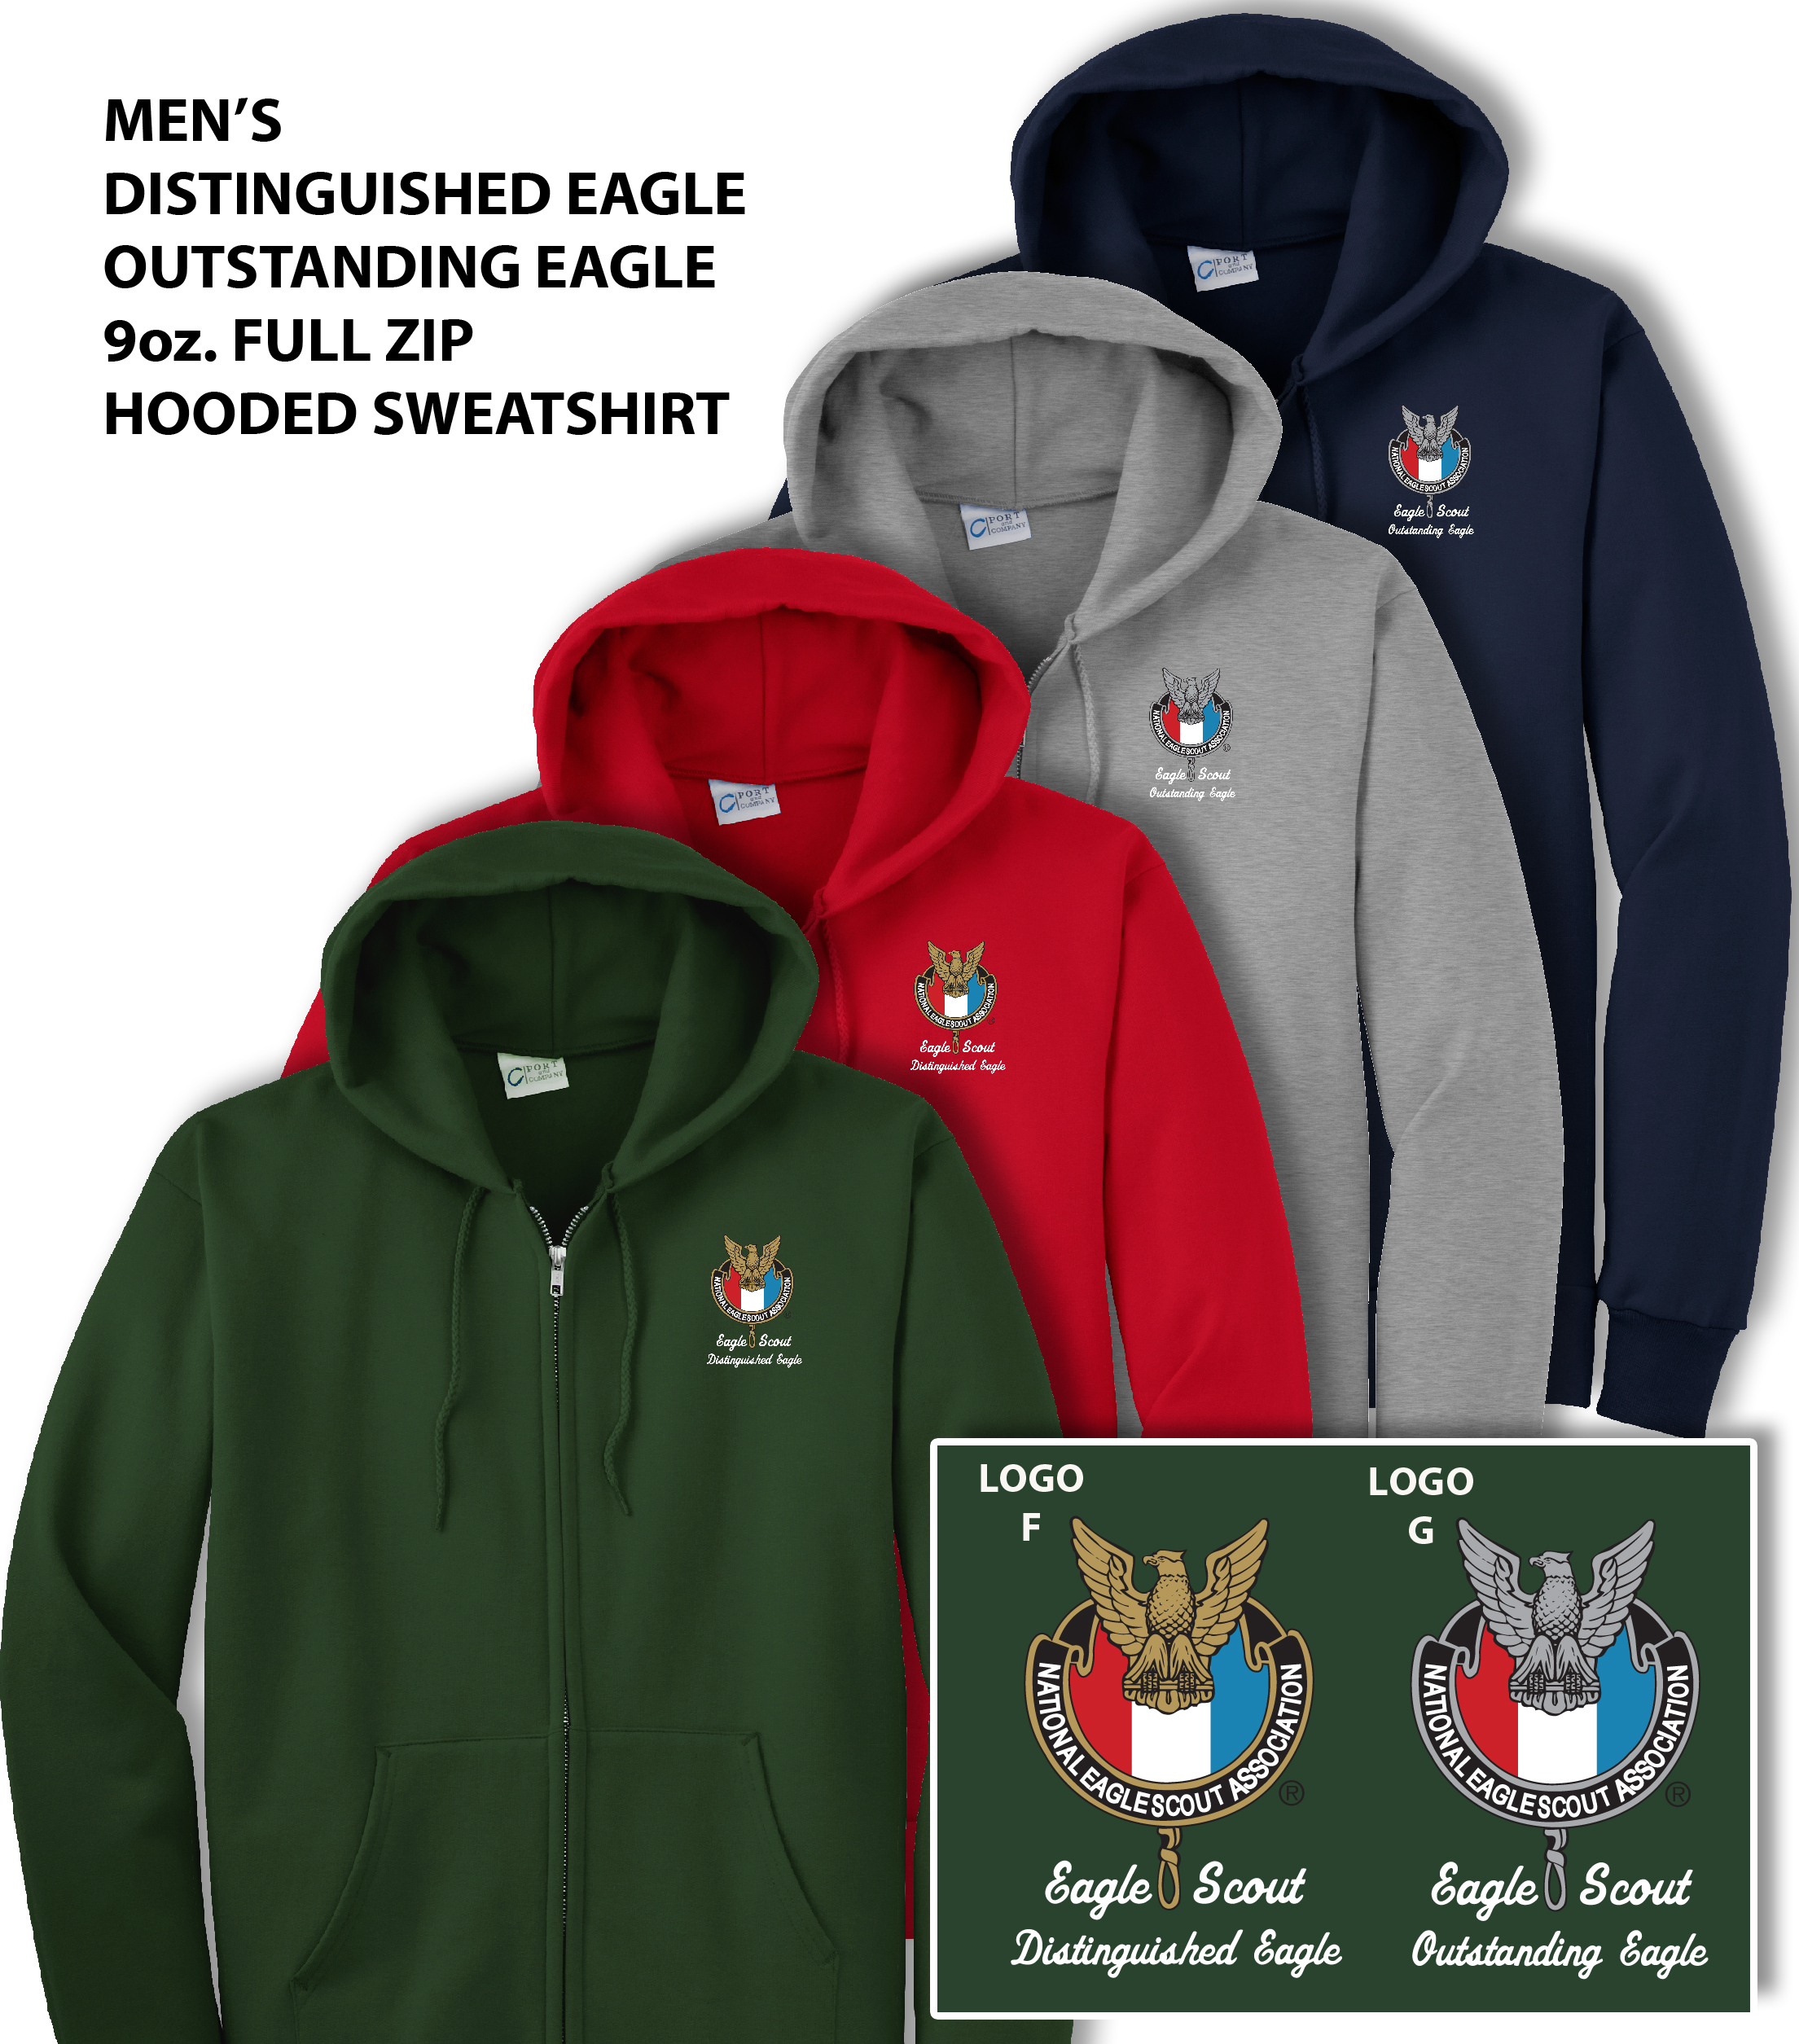 size 40 4fa0e d0aac Men's Eagle Scout Hoodie Sweatshirt full Zipper Distinguished & Outstanding